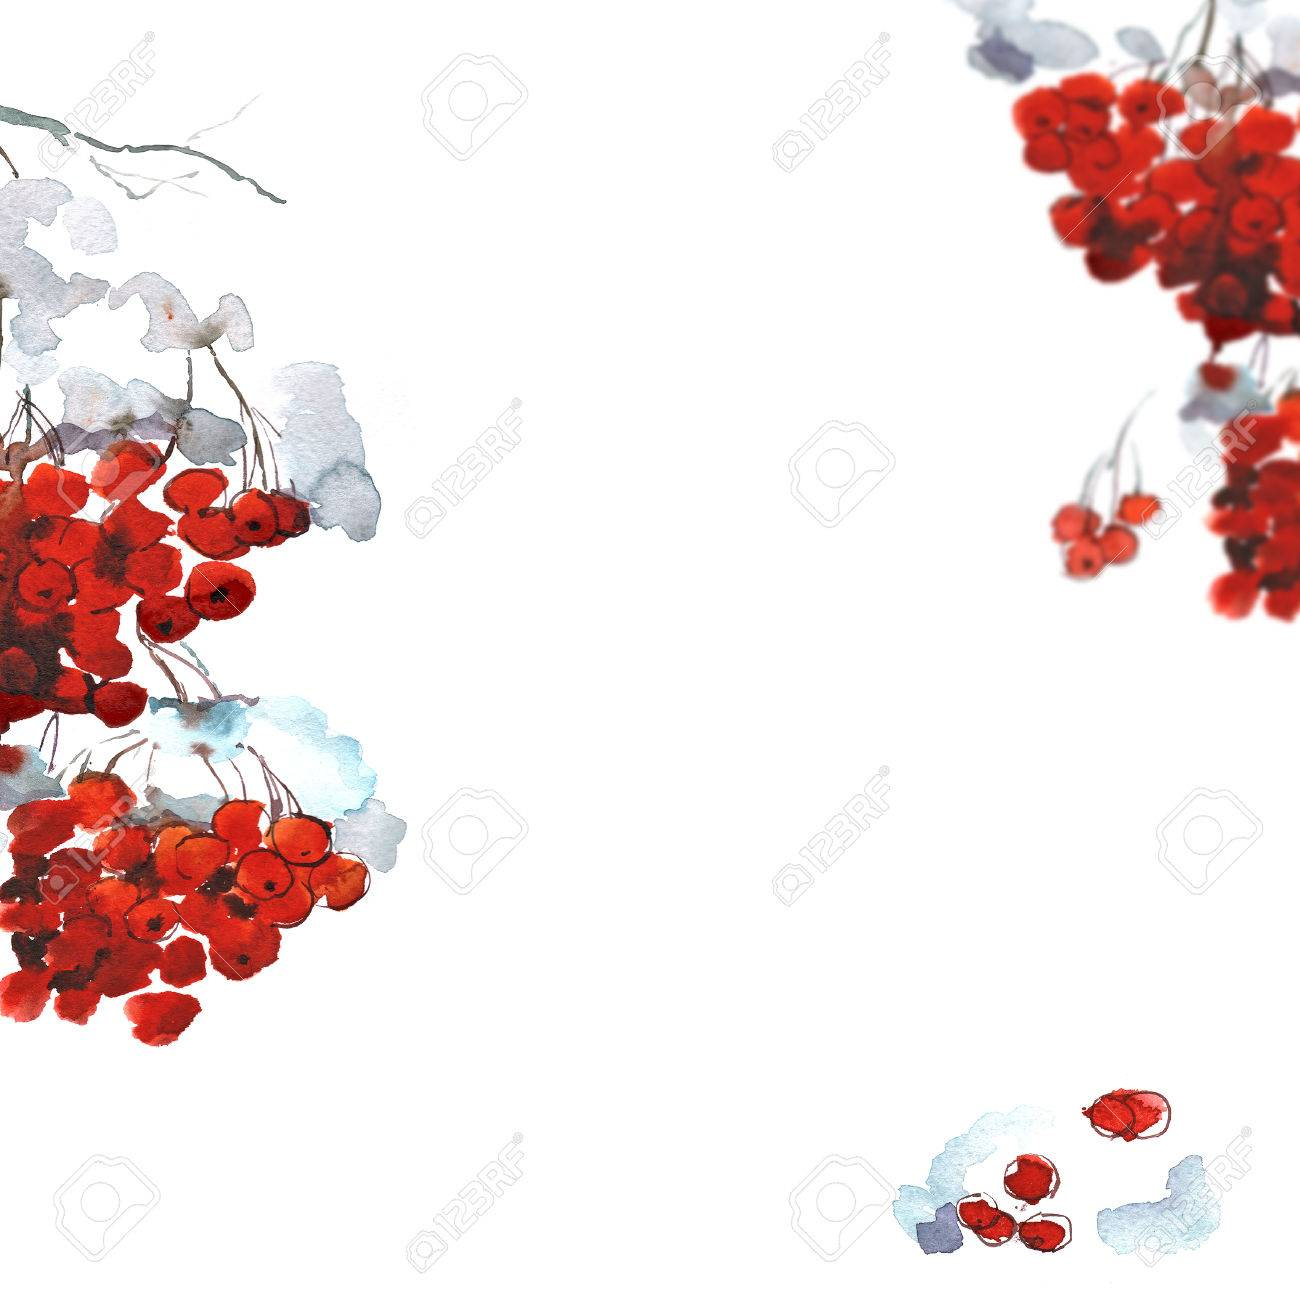 Watercolor Winter Background With Snowy Mountain Ash Red Berries